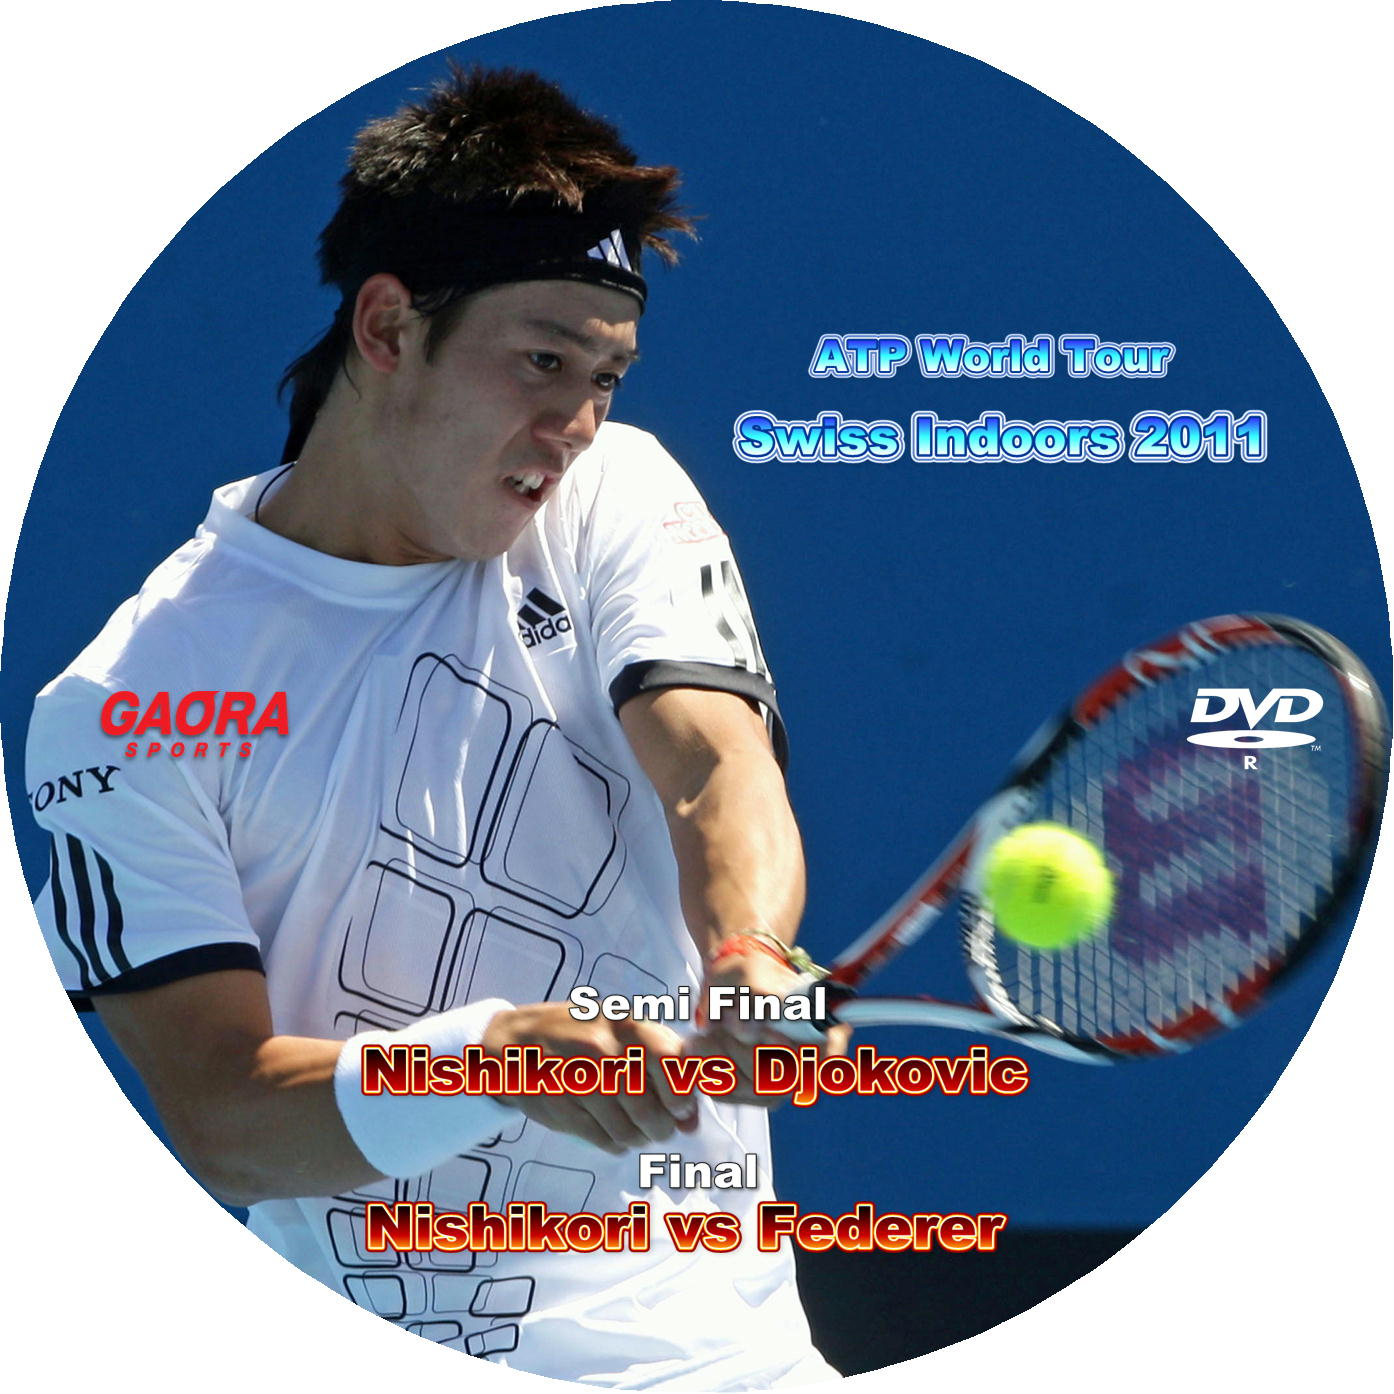 錦織圭 Swiss Indoors 2011 DVDラベル